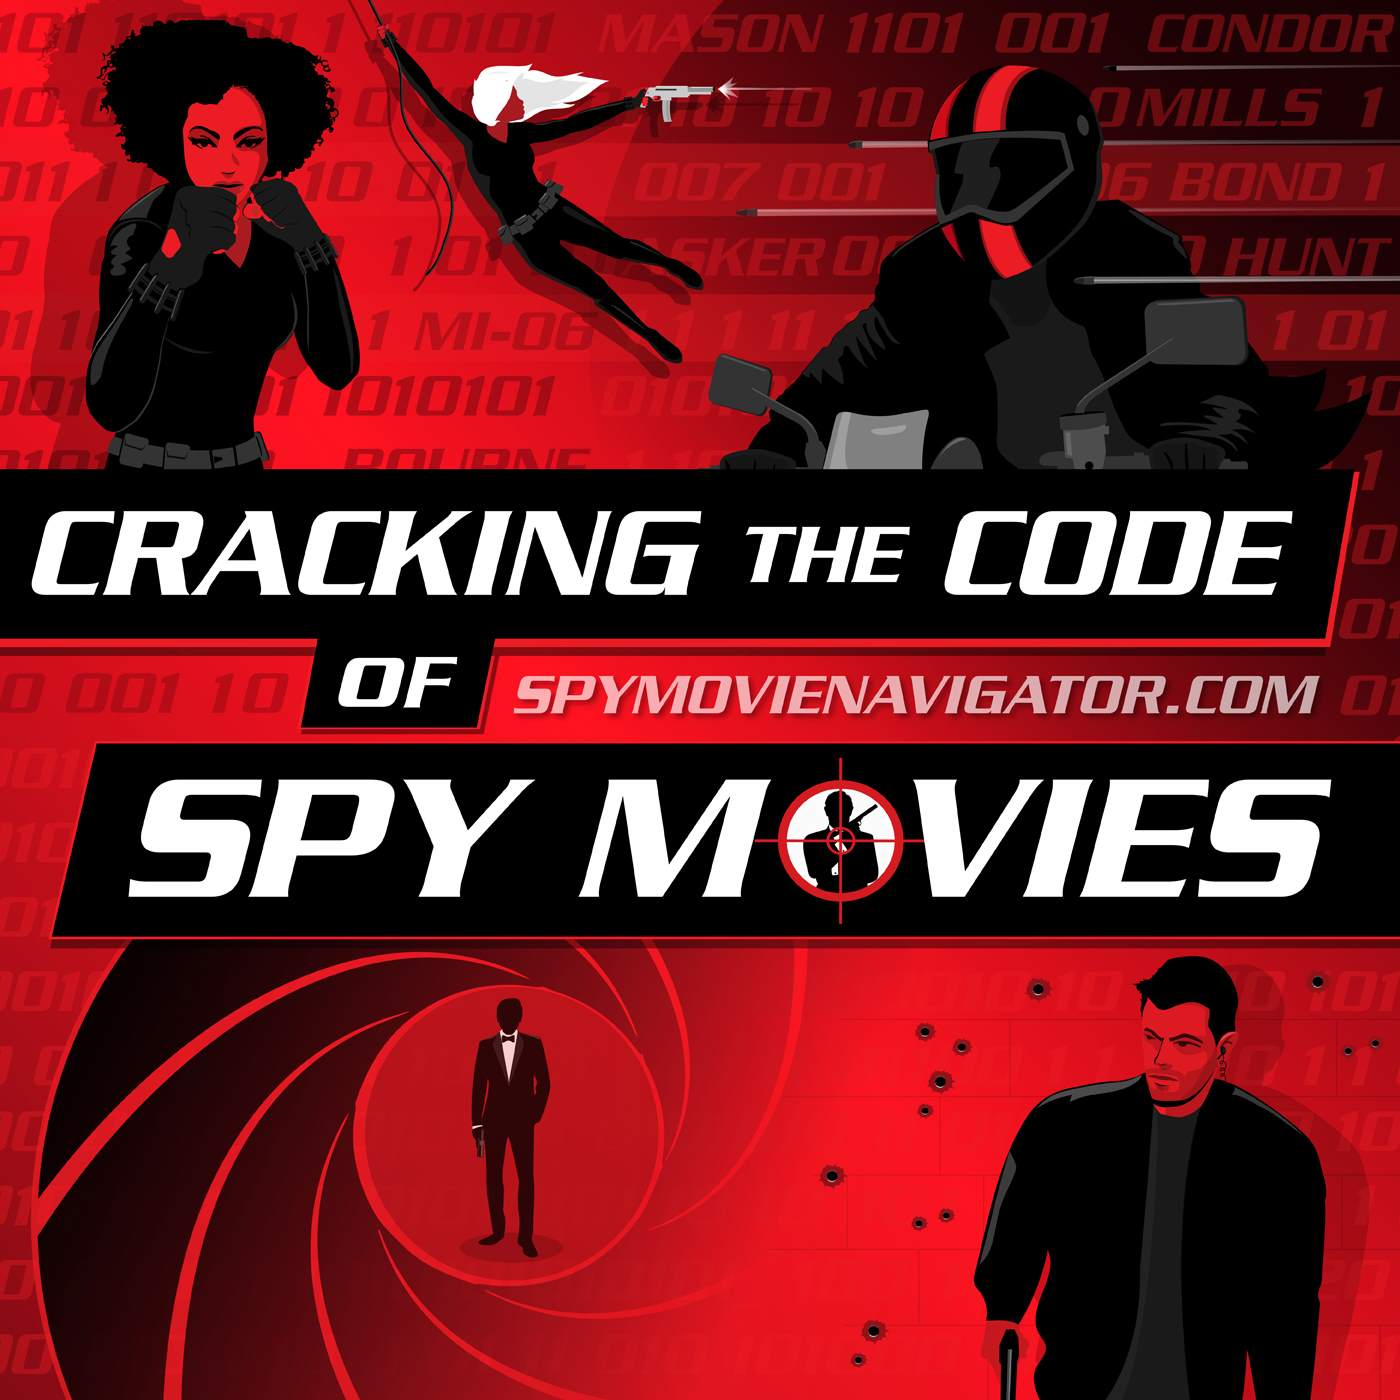 Cracking the Code of Spy Movies! show art